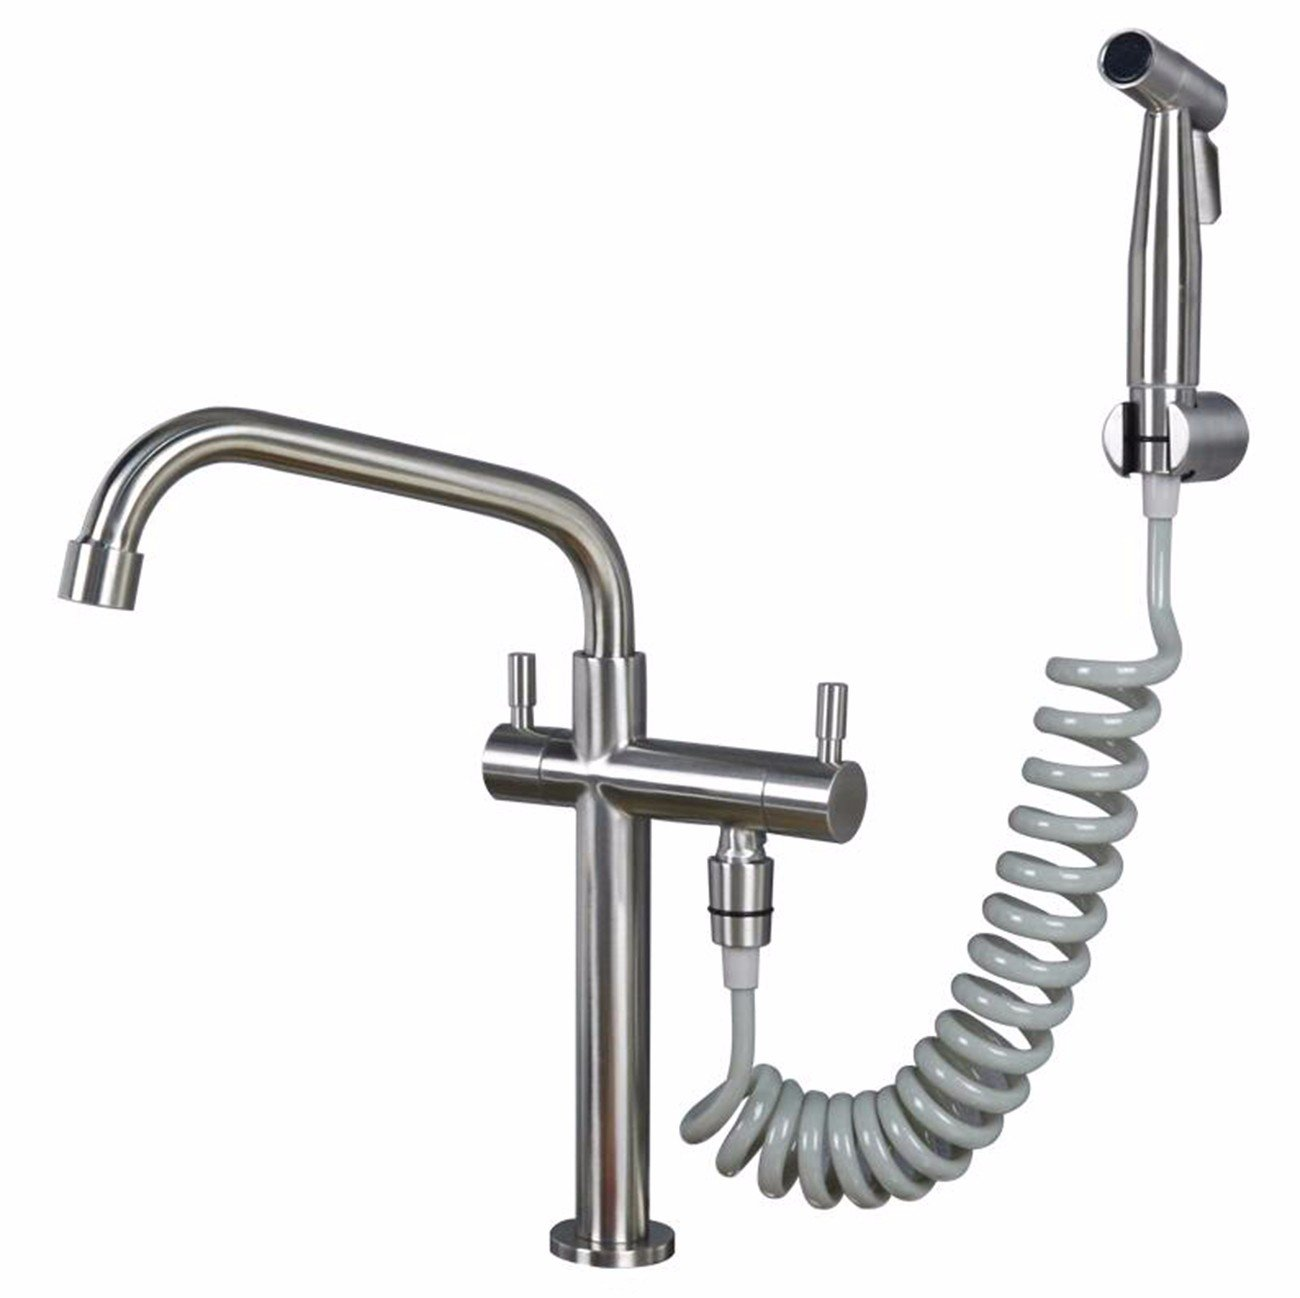 WasserhahnTap One in and two outlet taps single cold 304 stainless steel kitchen sink dishwasher swivel faucet